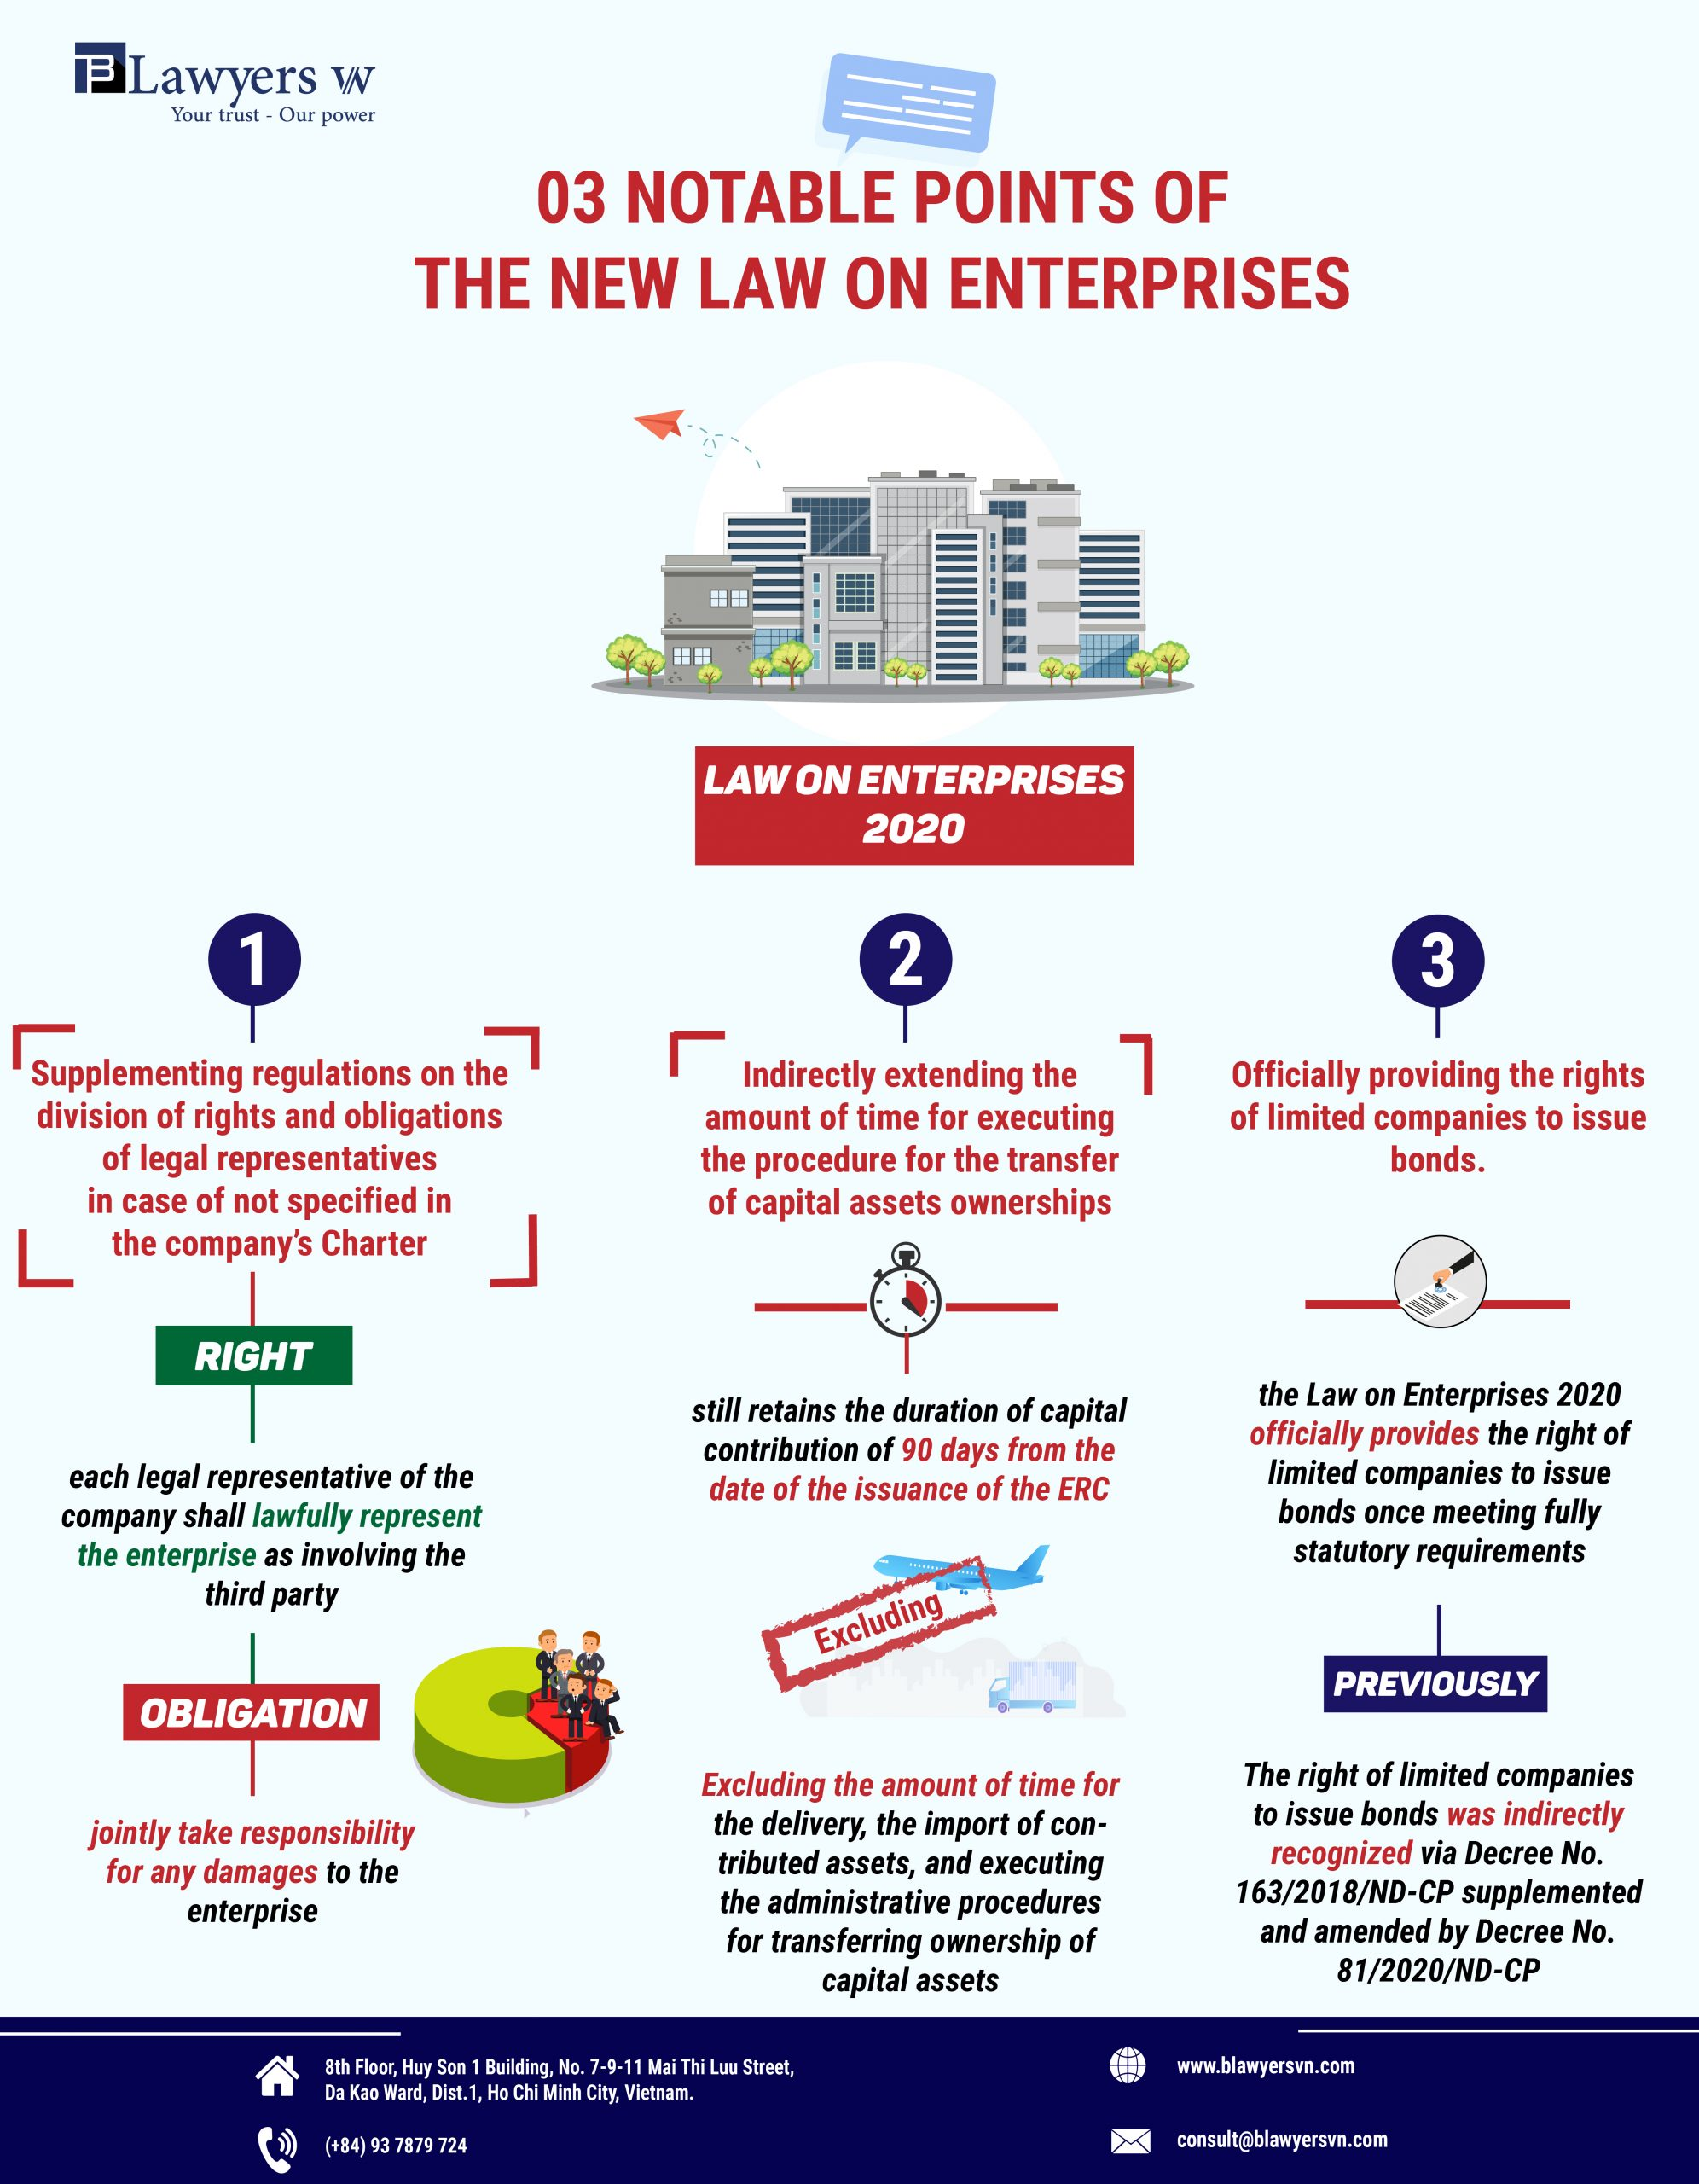 Law on Enterprises 2020